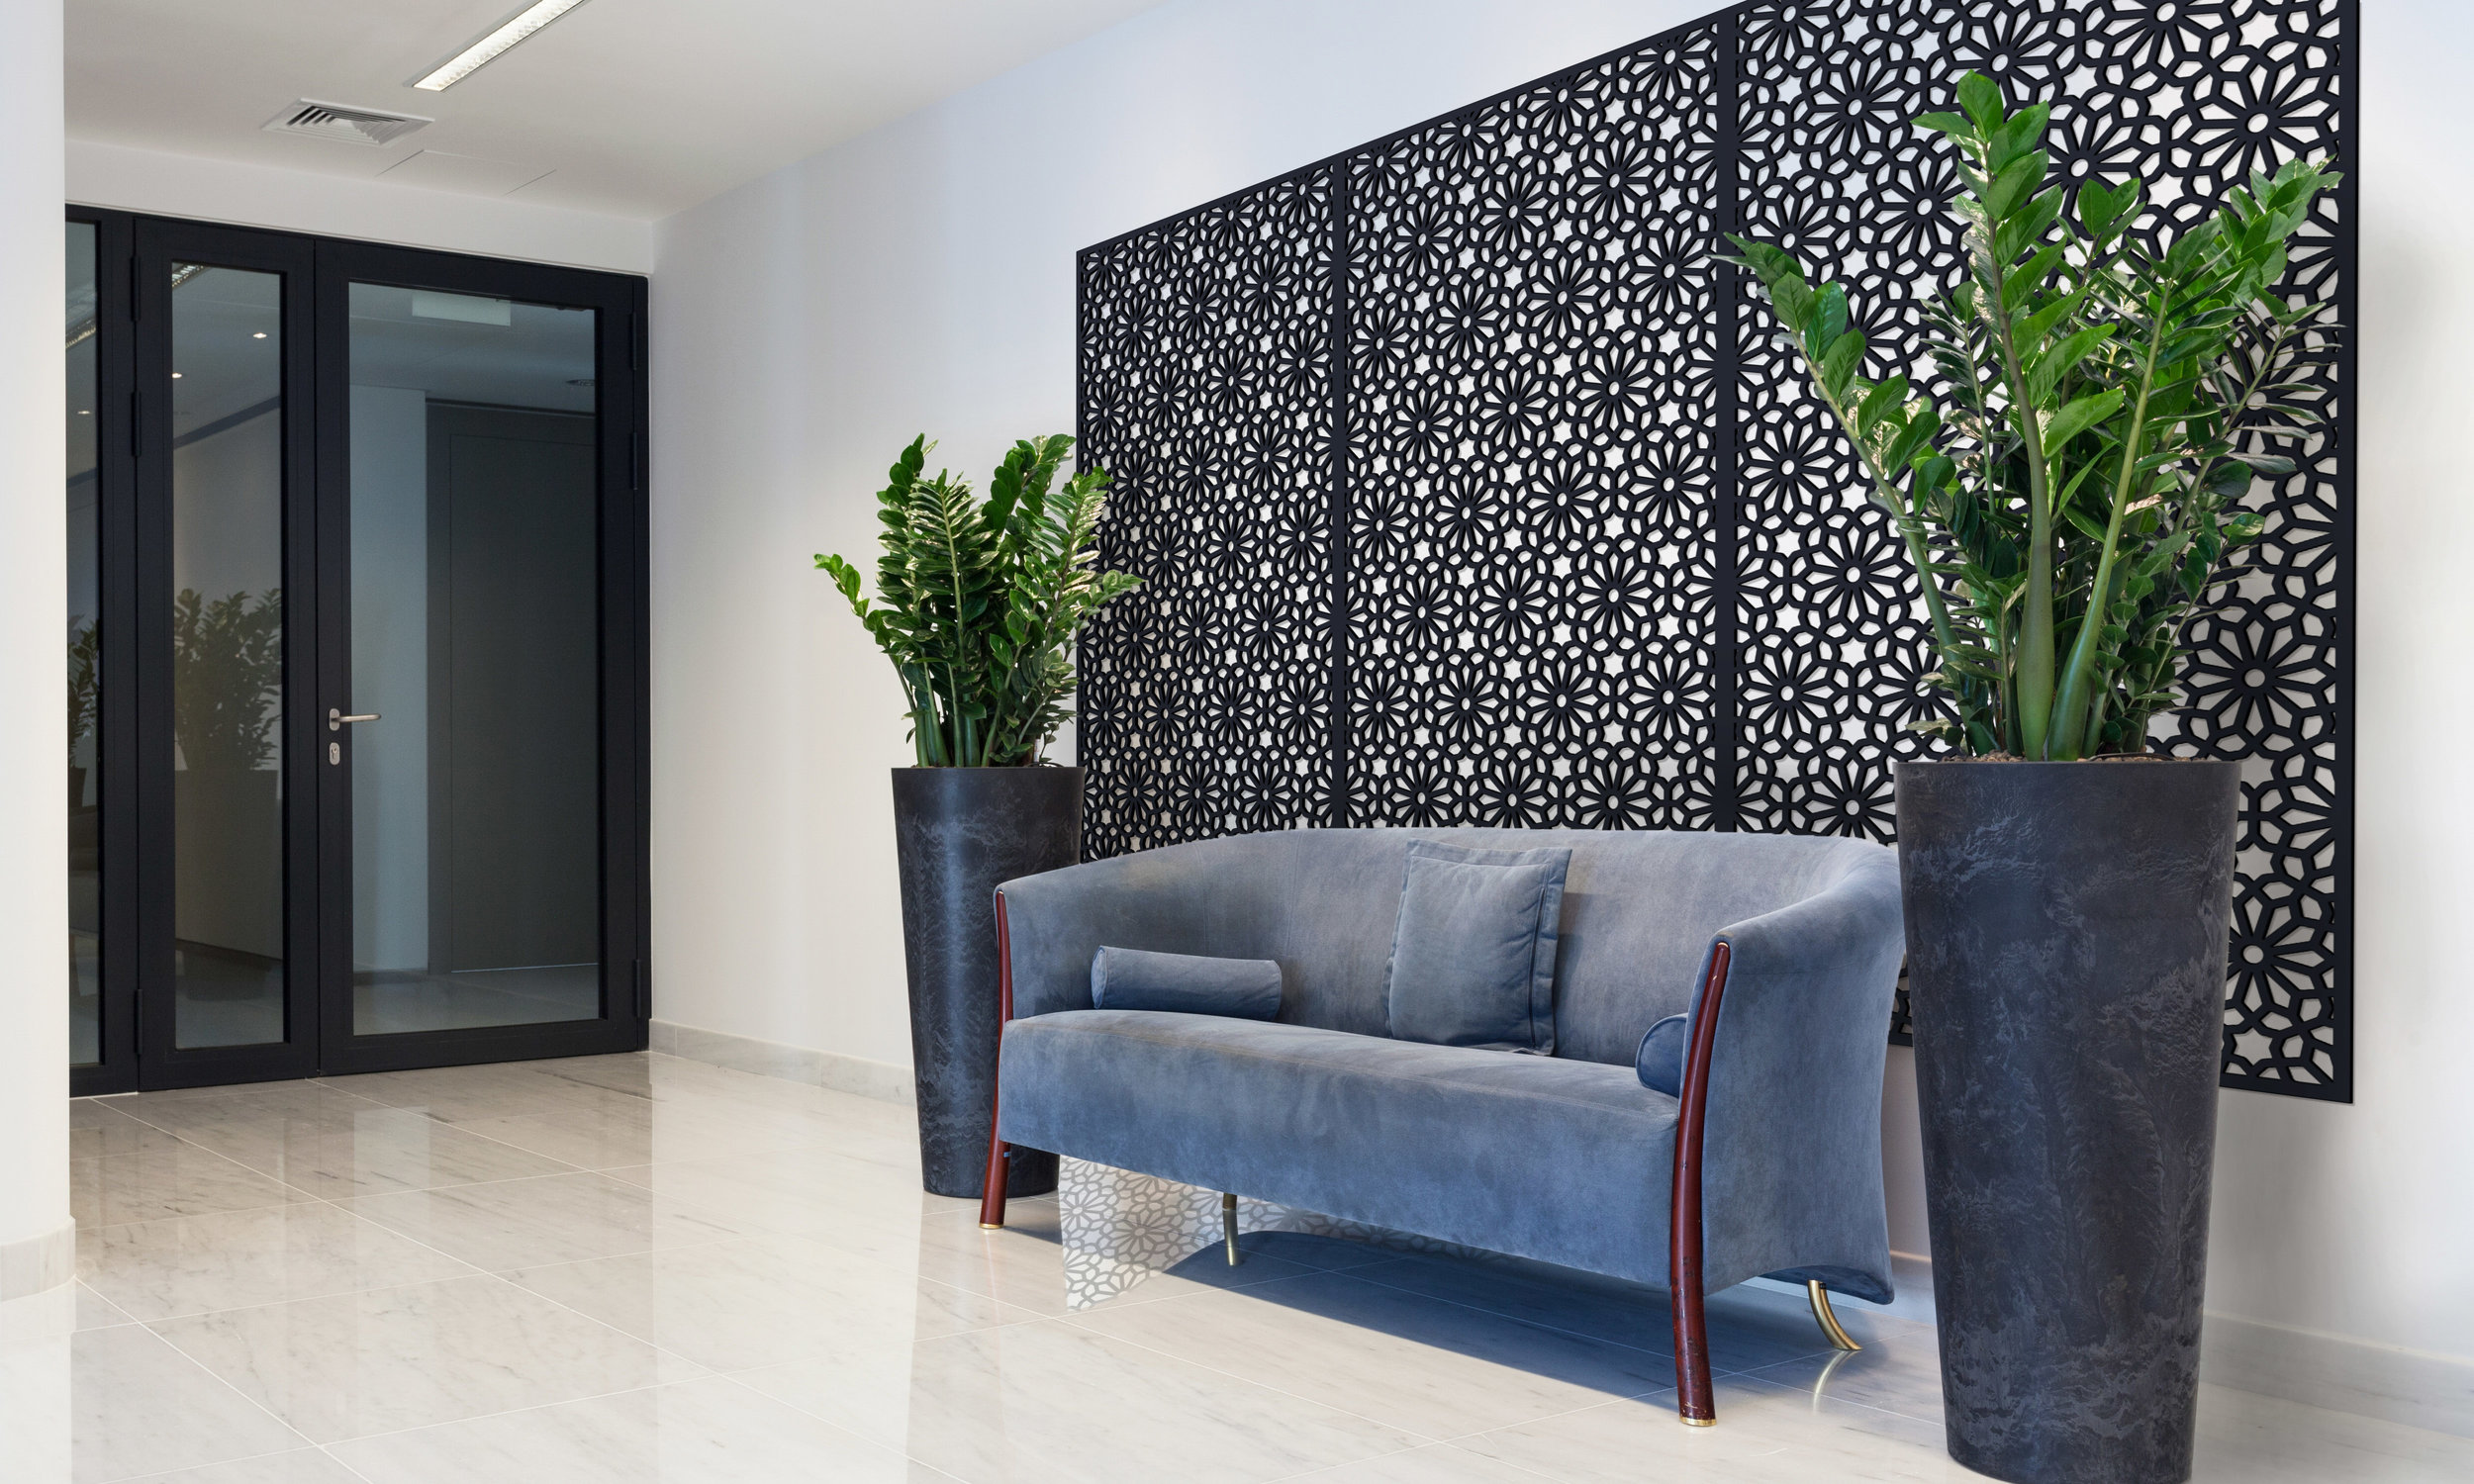 Installation Rendering B   Seville decorative office wall panel - painted